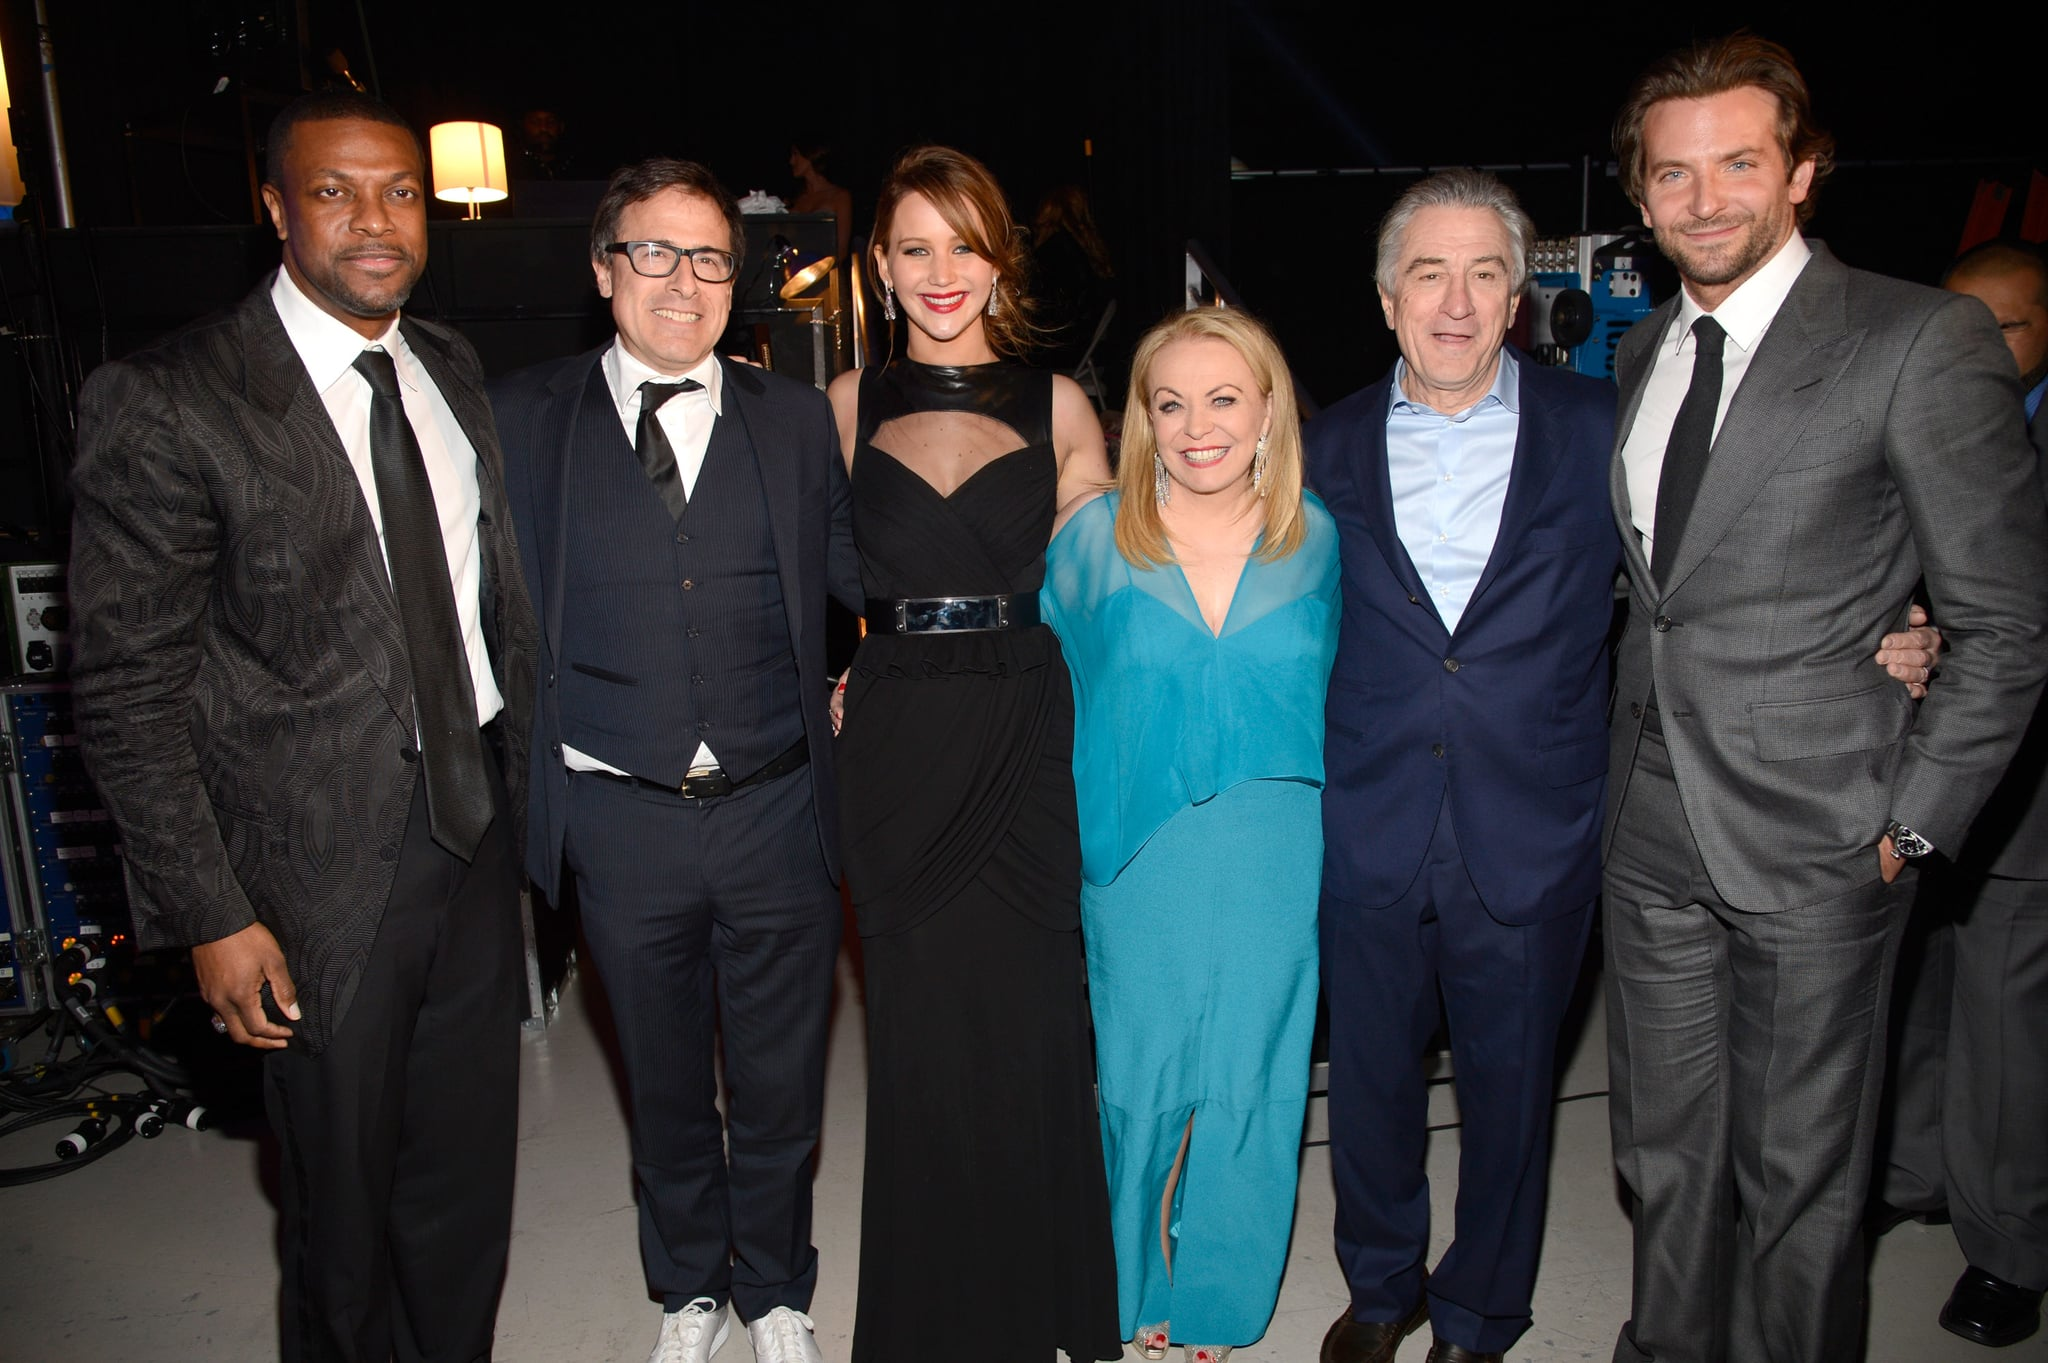 Jennifer Lawrence posed with her Silver Linings Playbook crew at the Critics' Choice Awards.